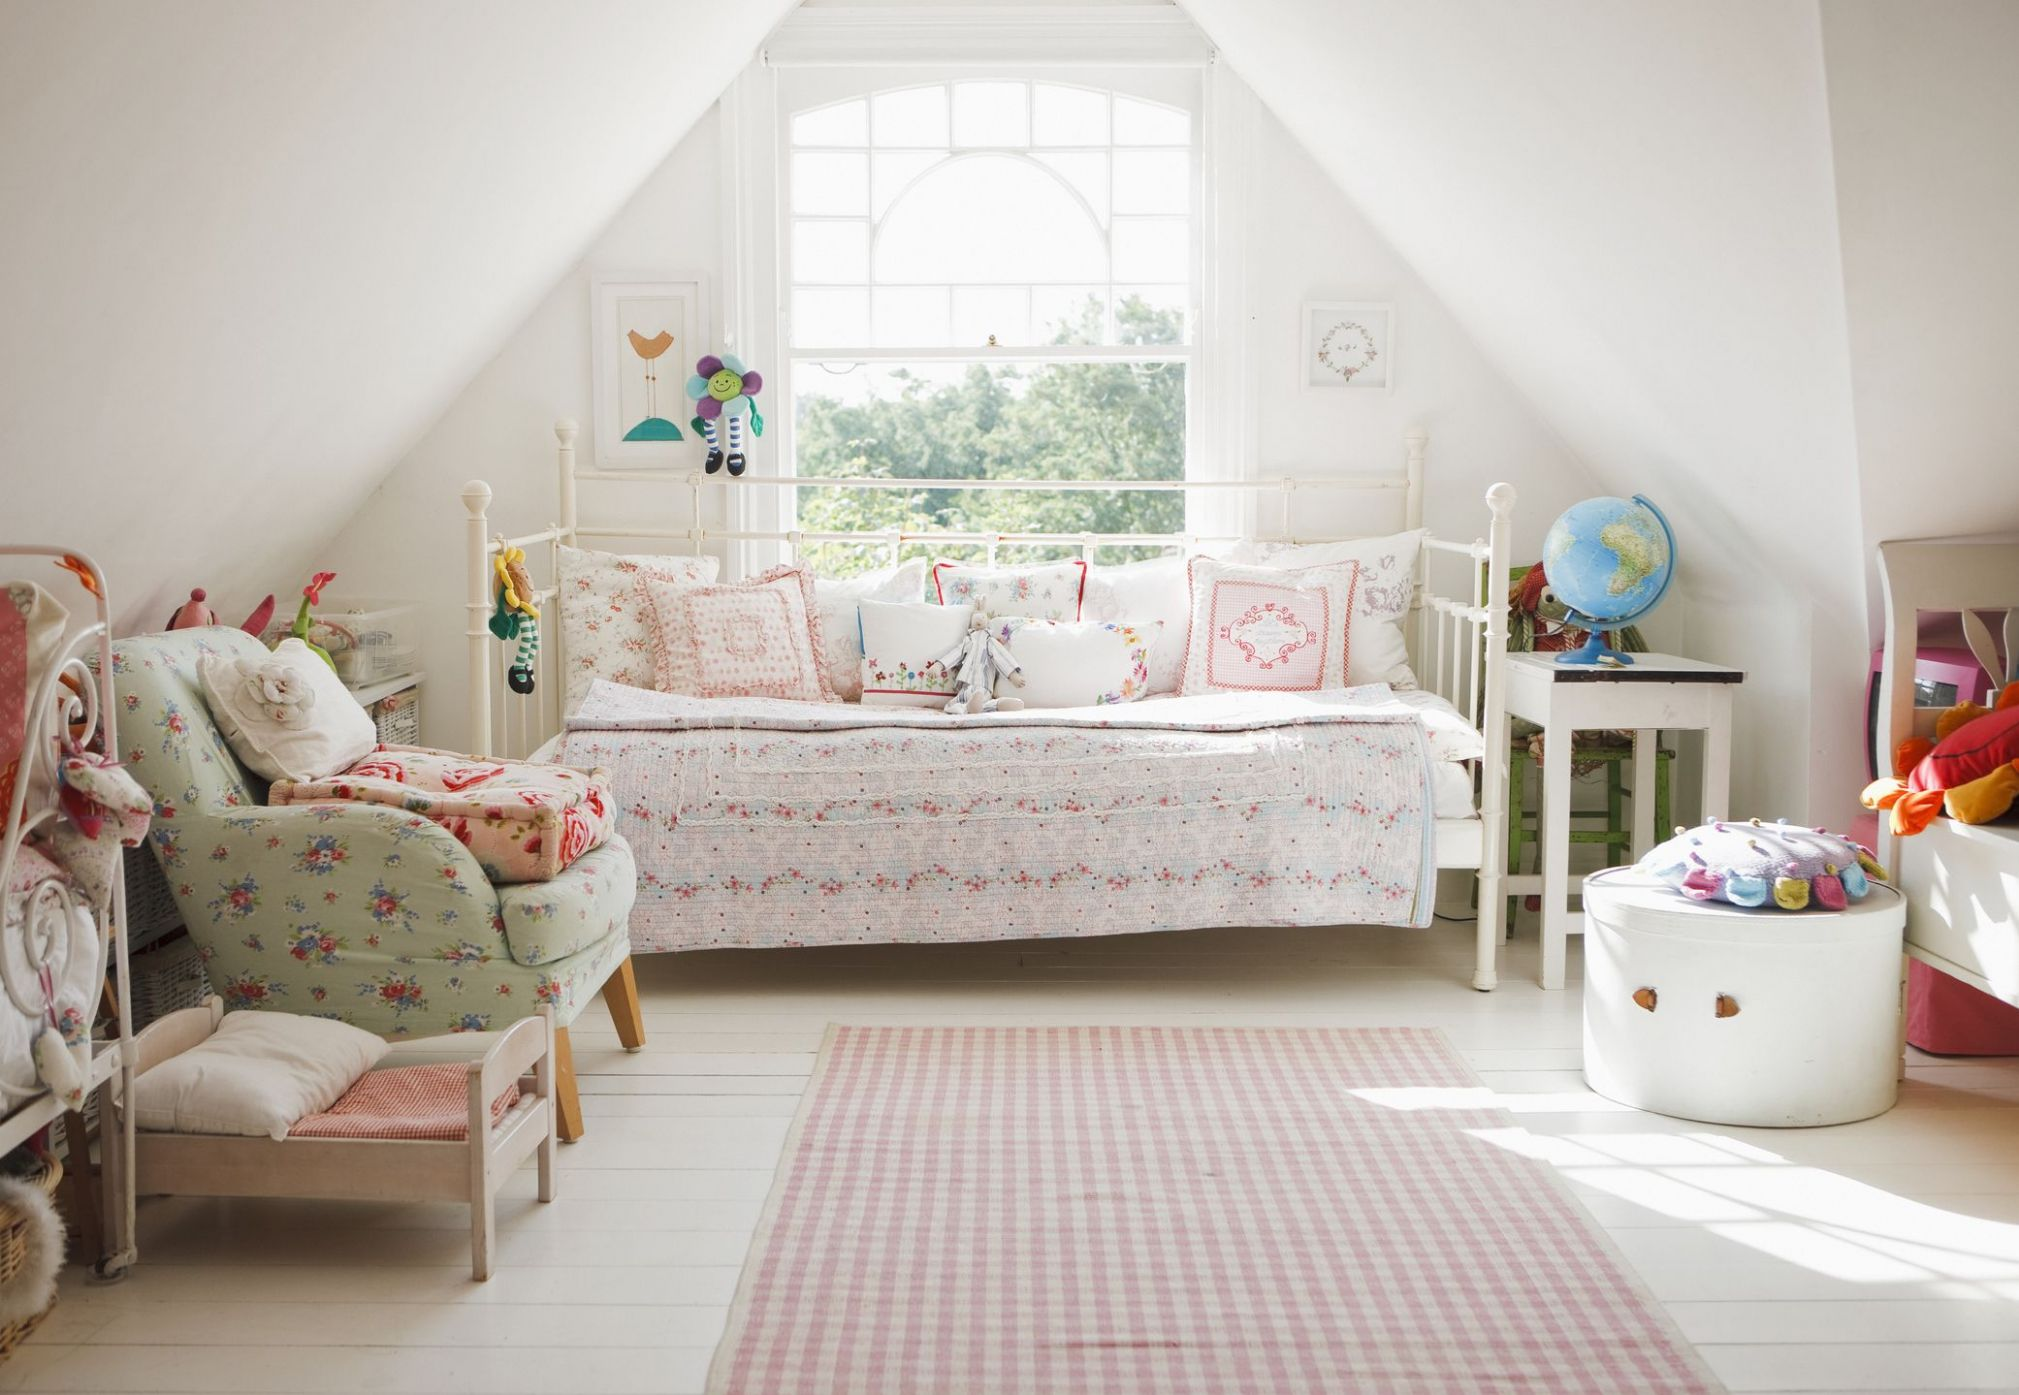 9 Best Baby Room Ideas - Nursery Design, Organization, and ..